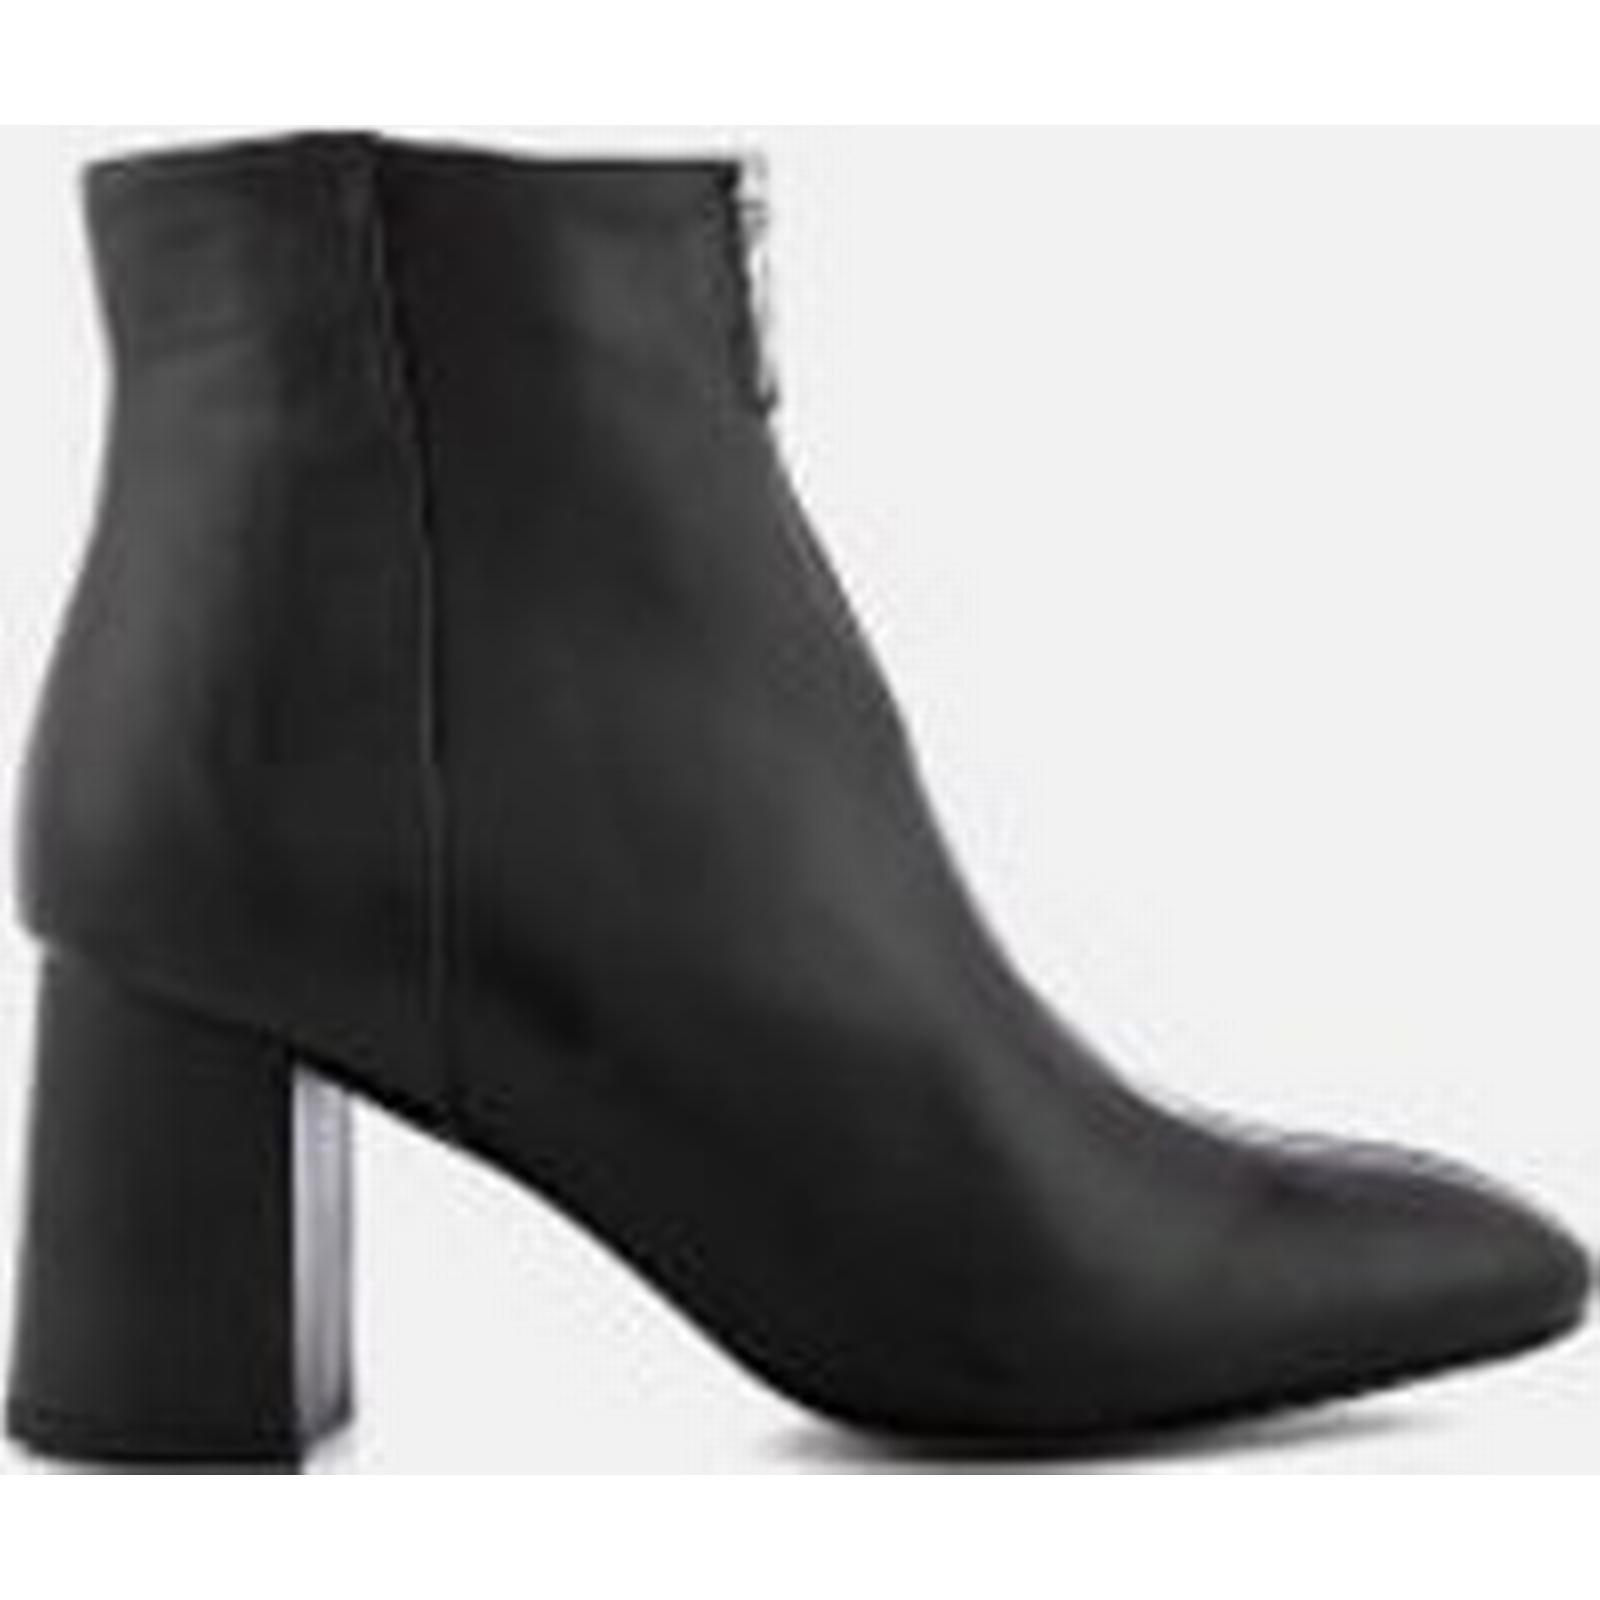 Rebecca Minkoff Women's Stefania Leather Black Heeled Ankle Boots - Black Leather 307c58